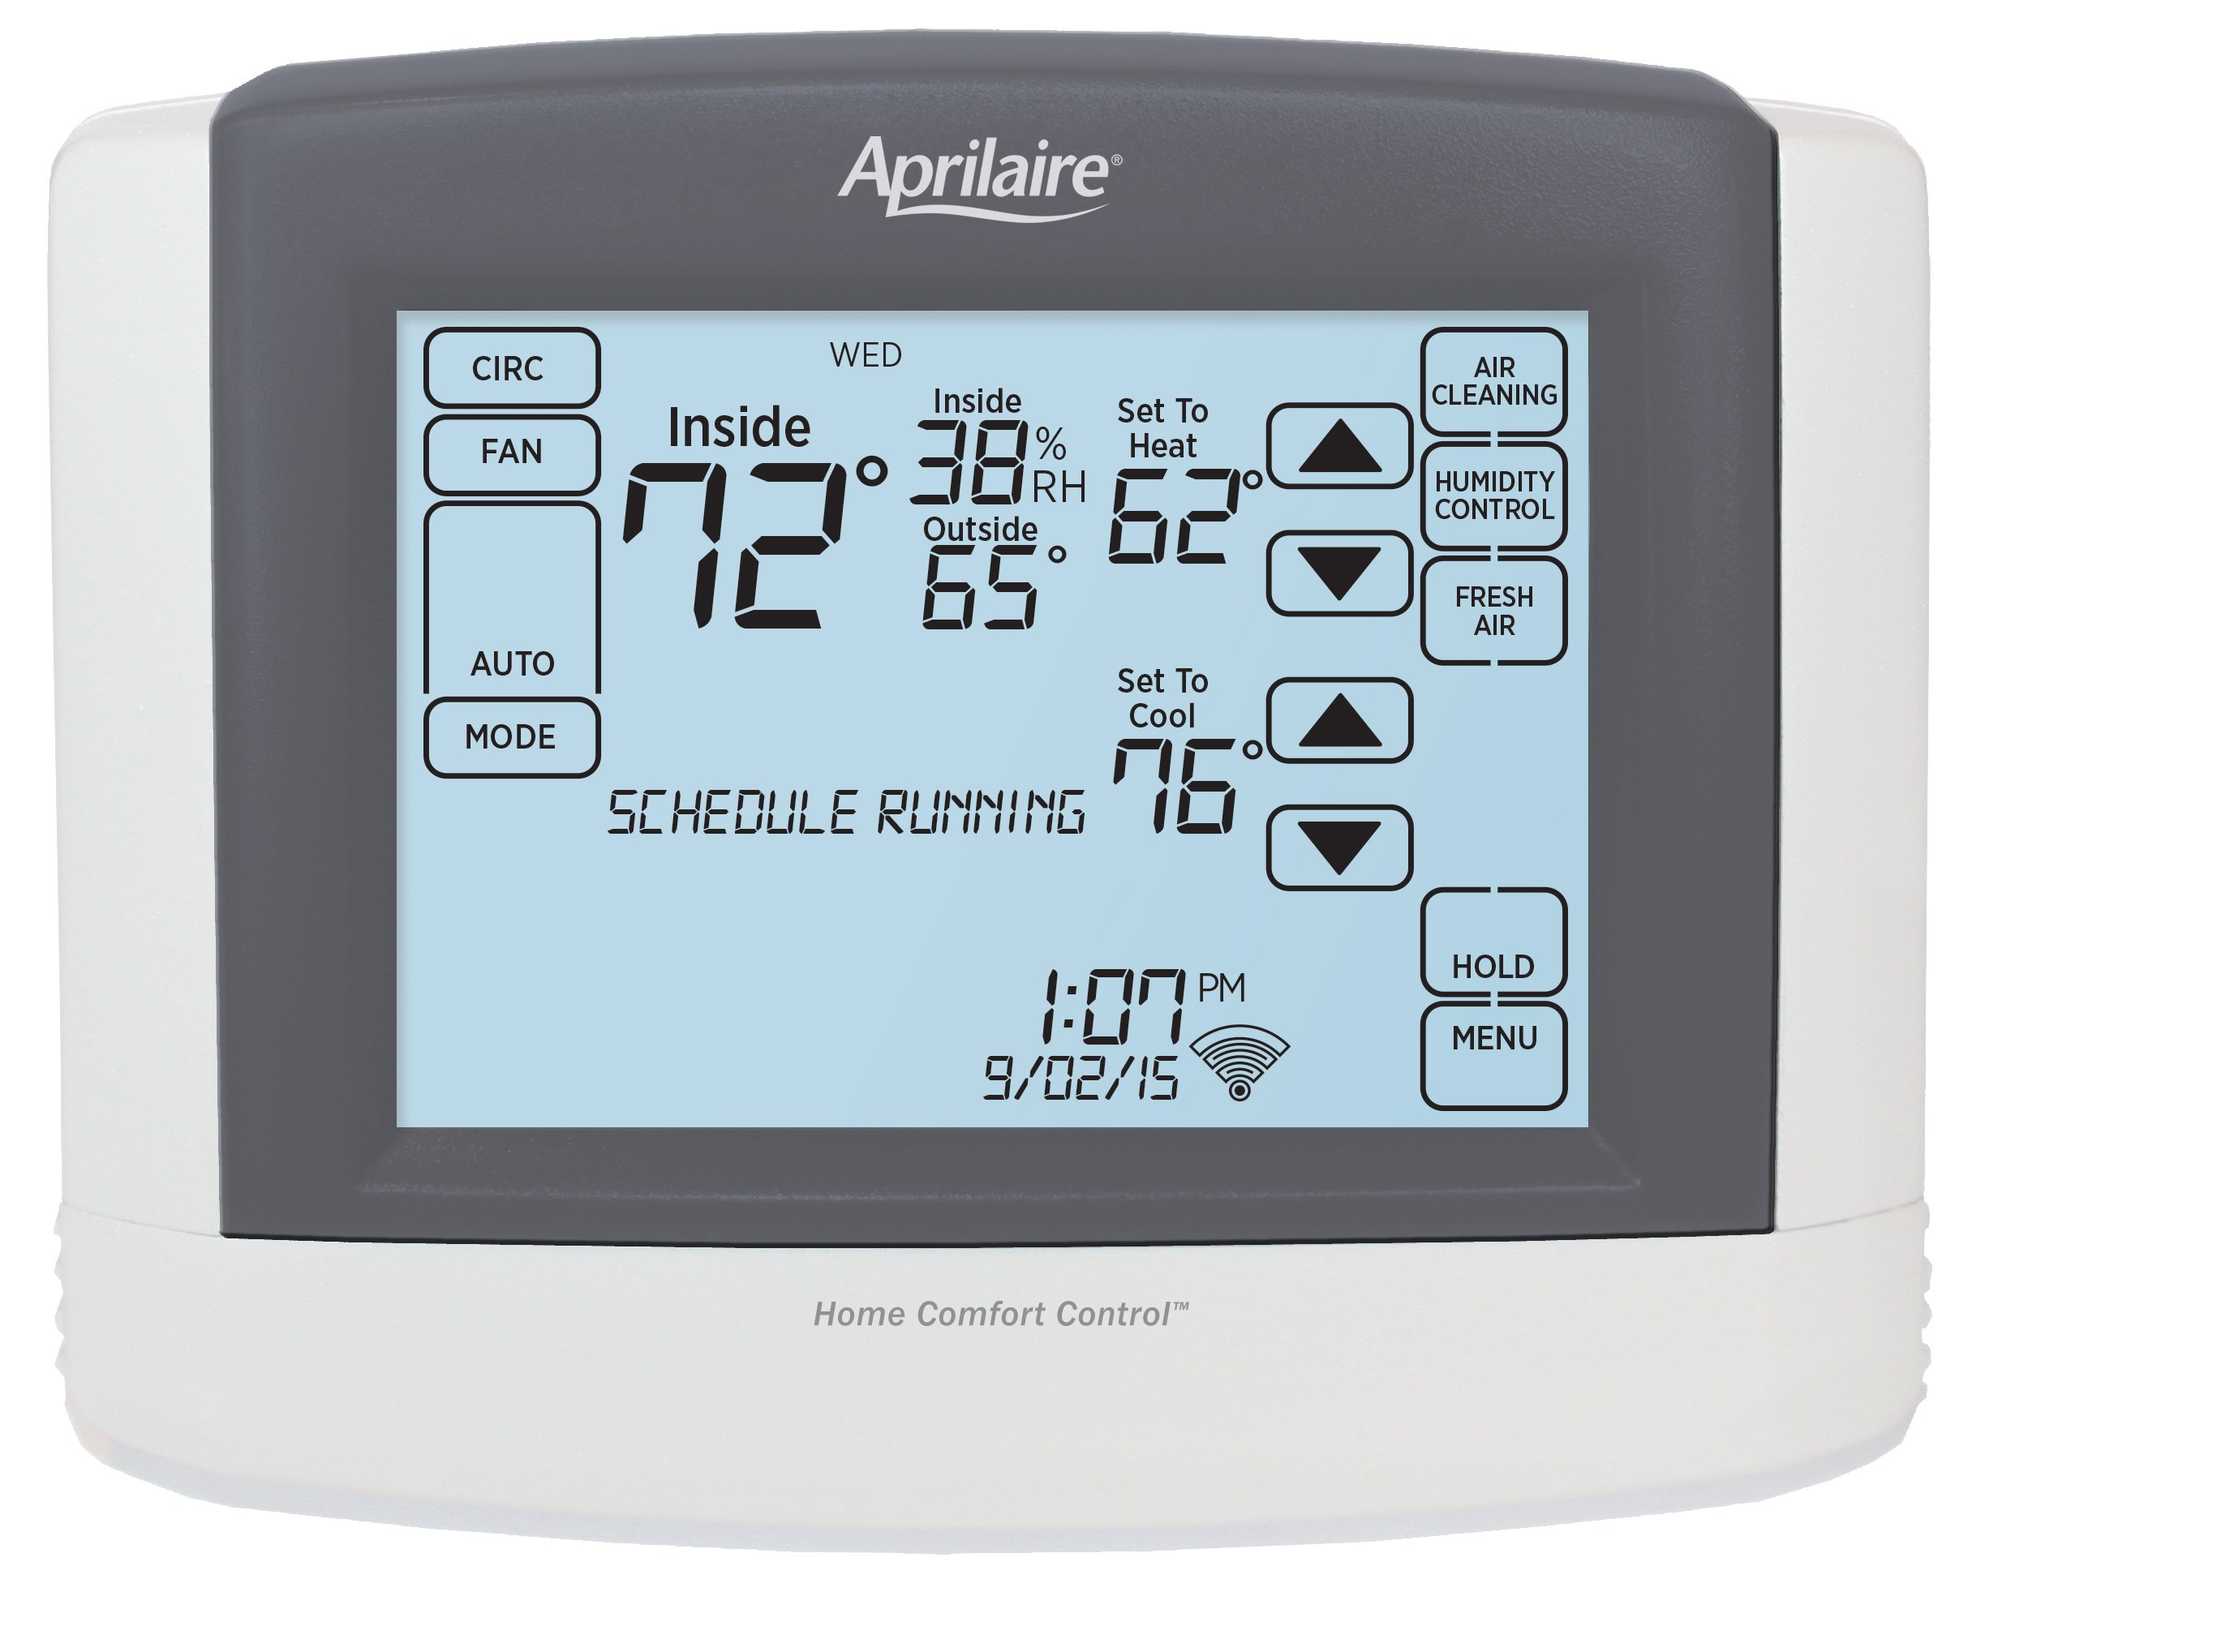 Aprilaire Model 8830 Thermostat